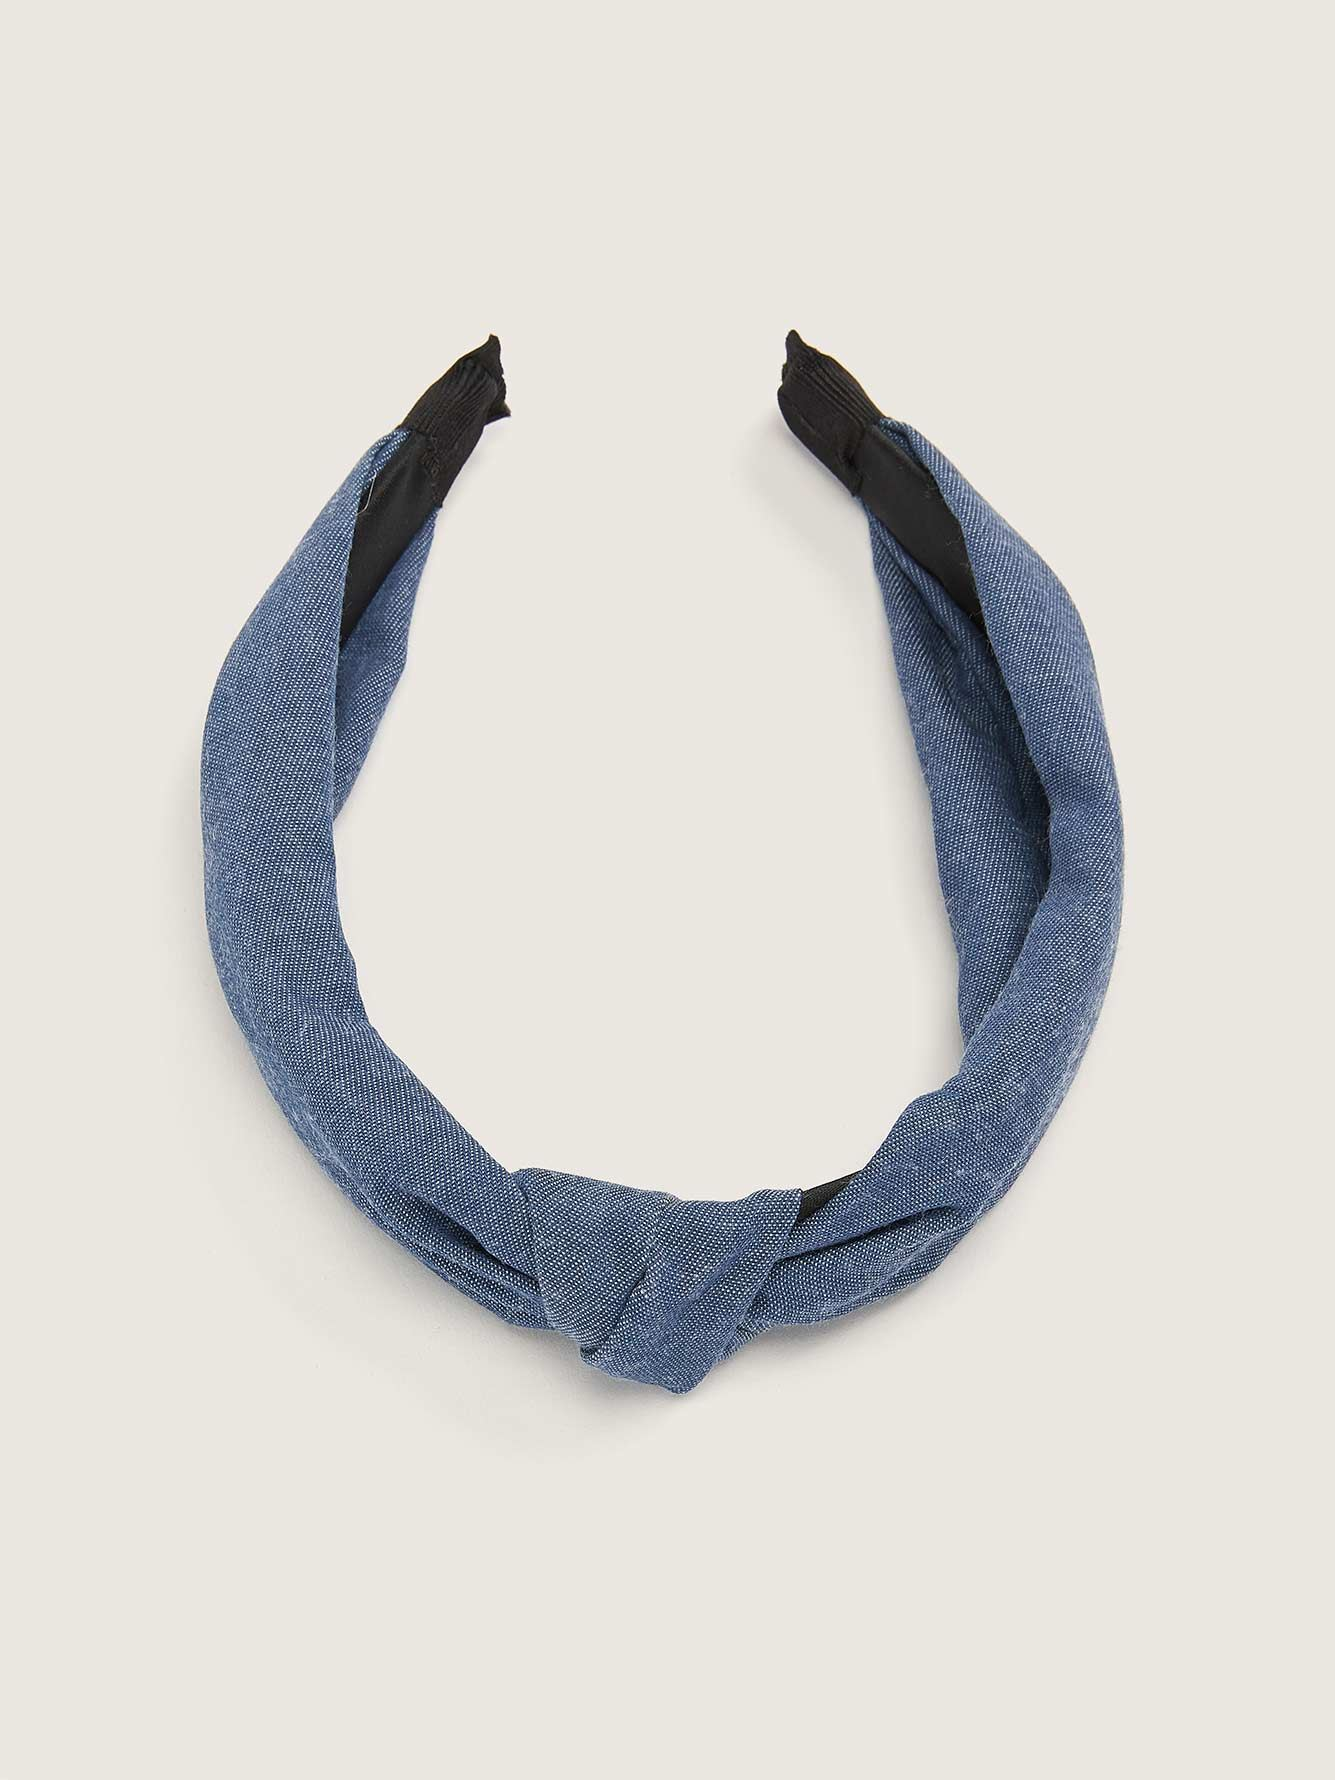 Denim Knotted Headband - In Every Story